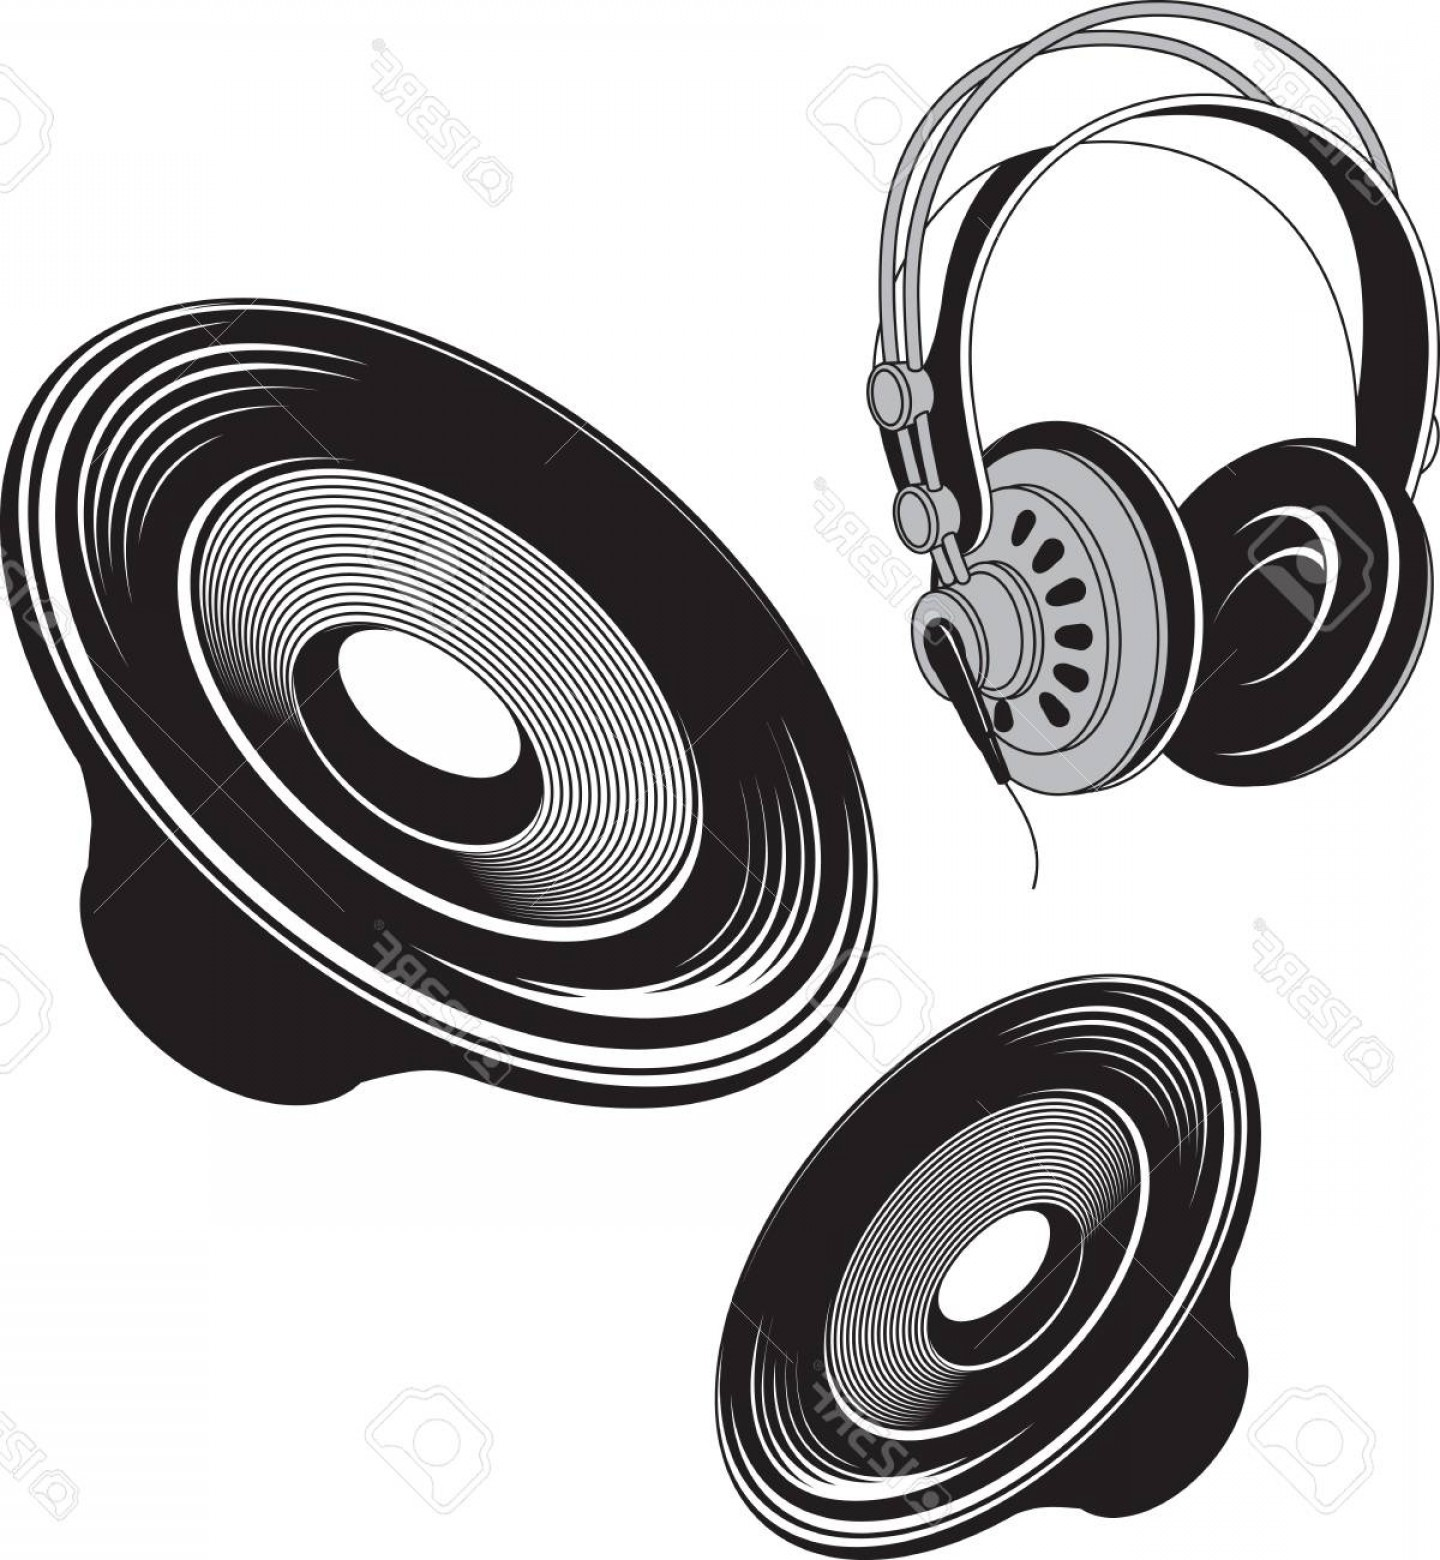 Speakers Vector Black: Photostock Vector Vector Black And White Illustration Of Speakers And Headphones Acoustic Devices